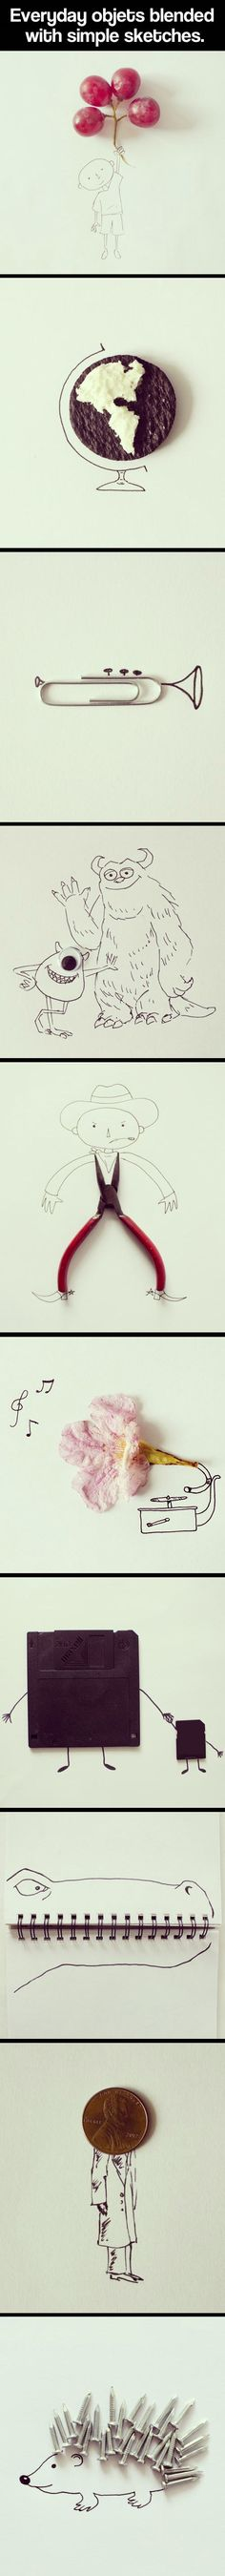 Playful Illustrations by Javier Pérez via slowrobot: Every day objects come to life! #Drawing